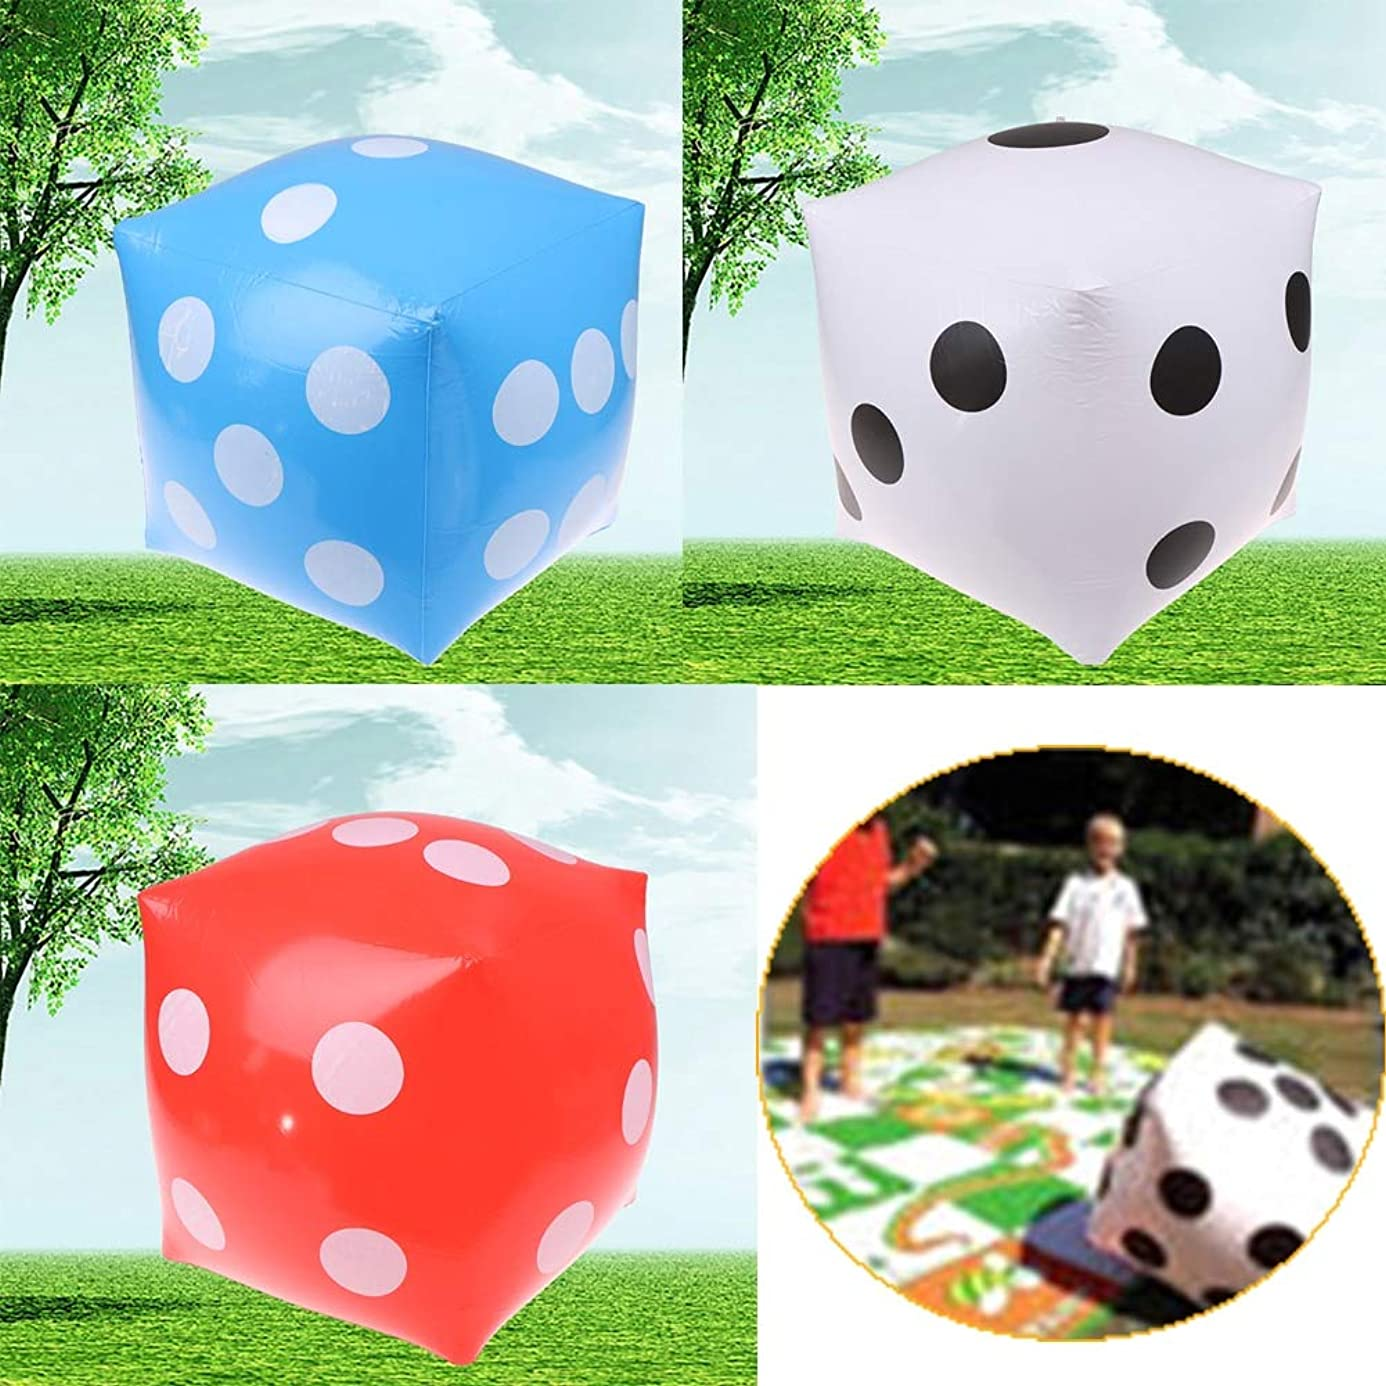 Uranus - 35cm Inflatable Multi Color Blow-Up Cube Dice Toy Stage Prop Group Game Tool Casino Poker Party Decorations Pool Beach Toy